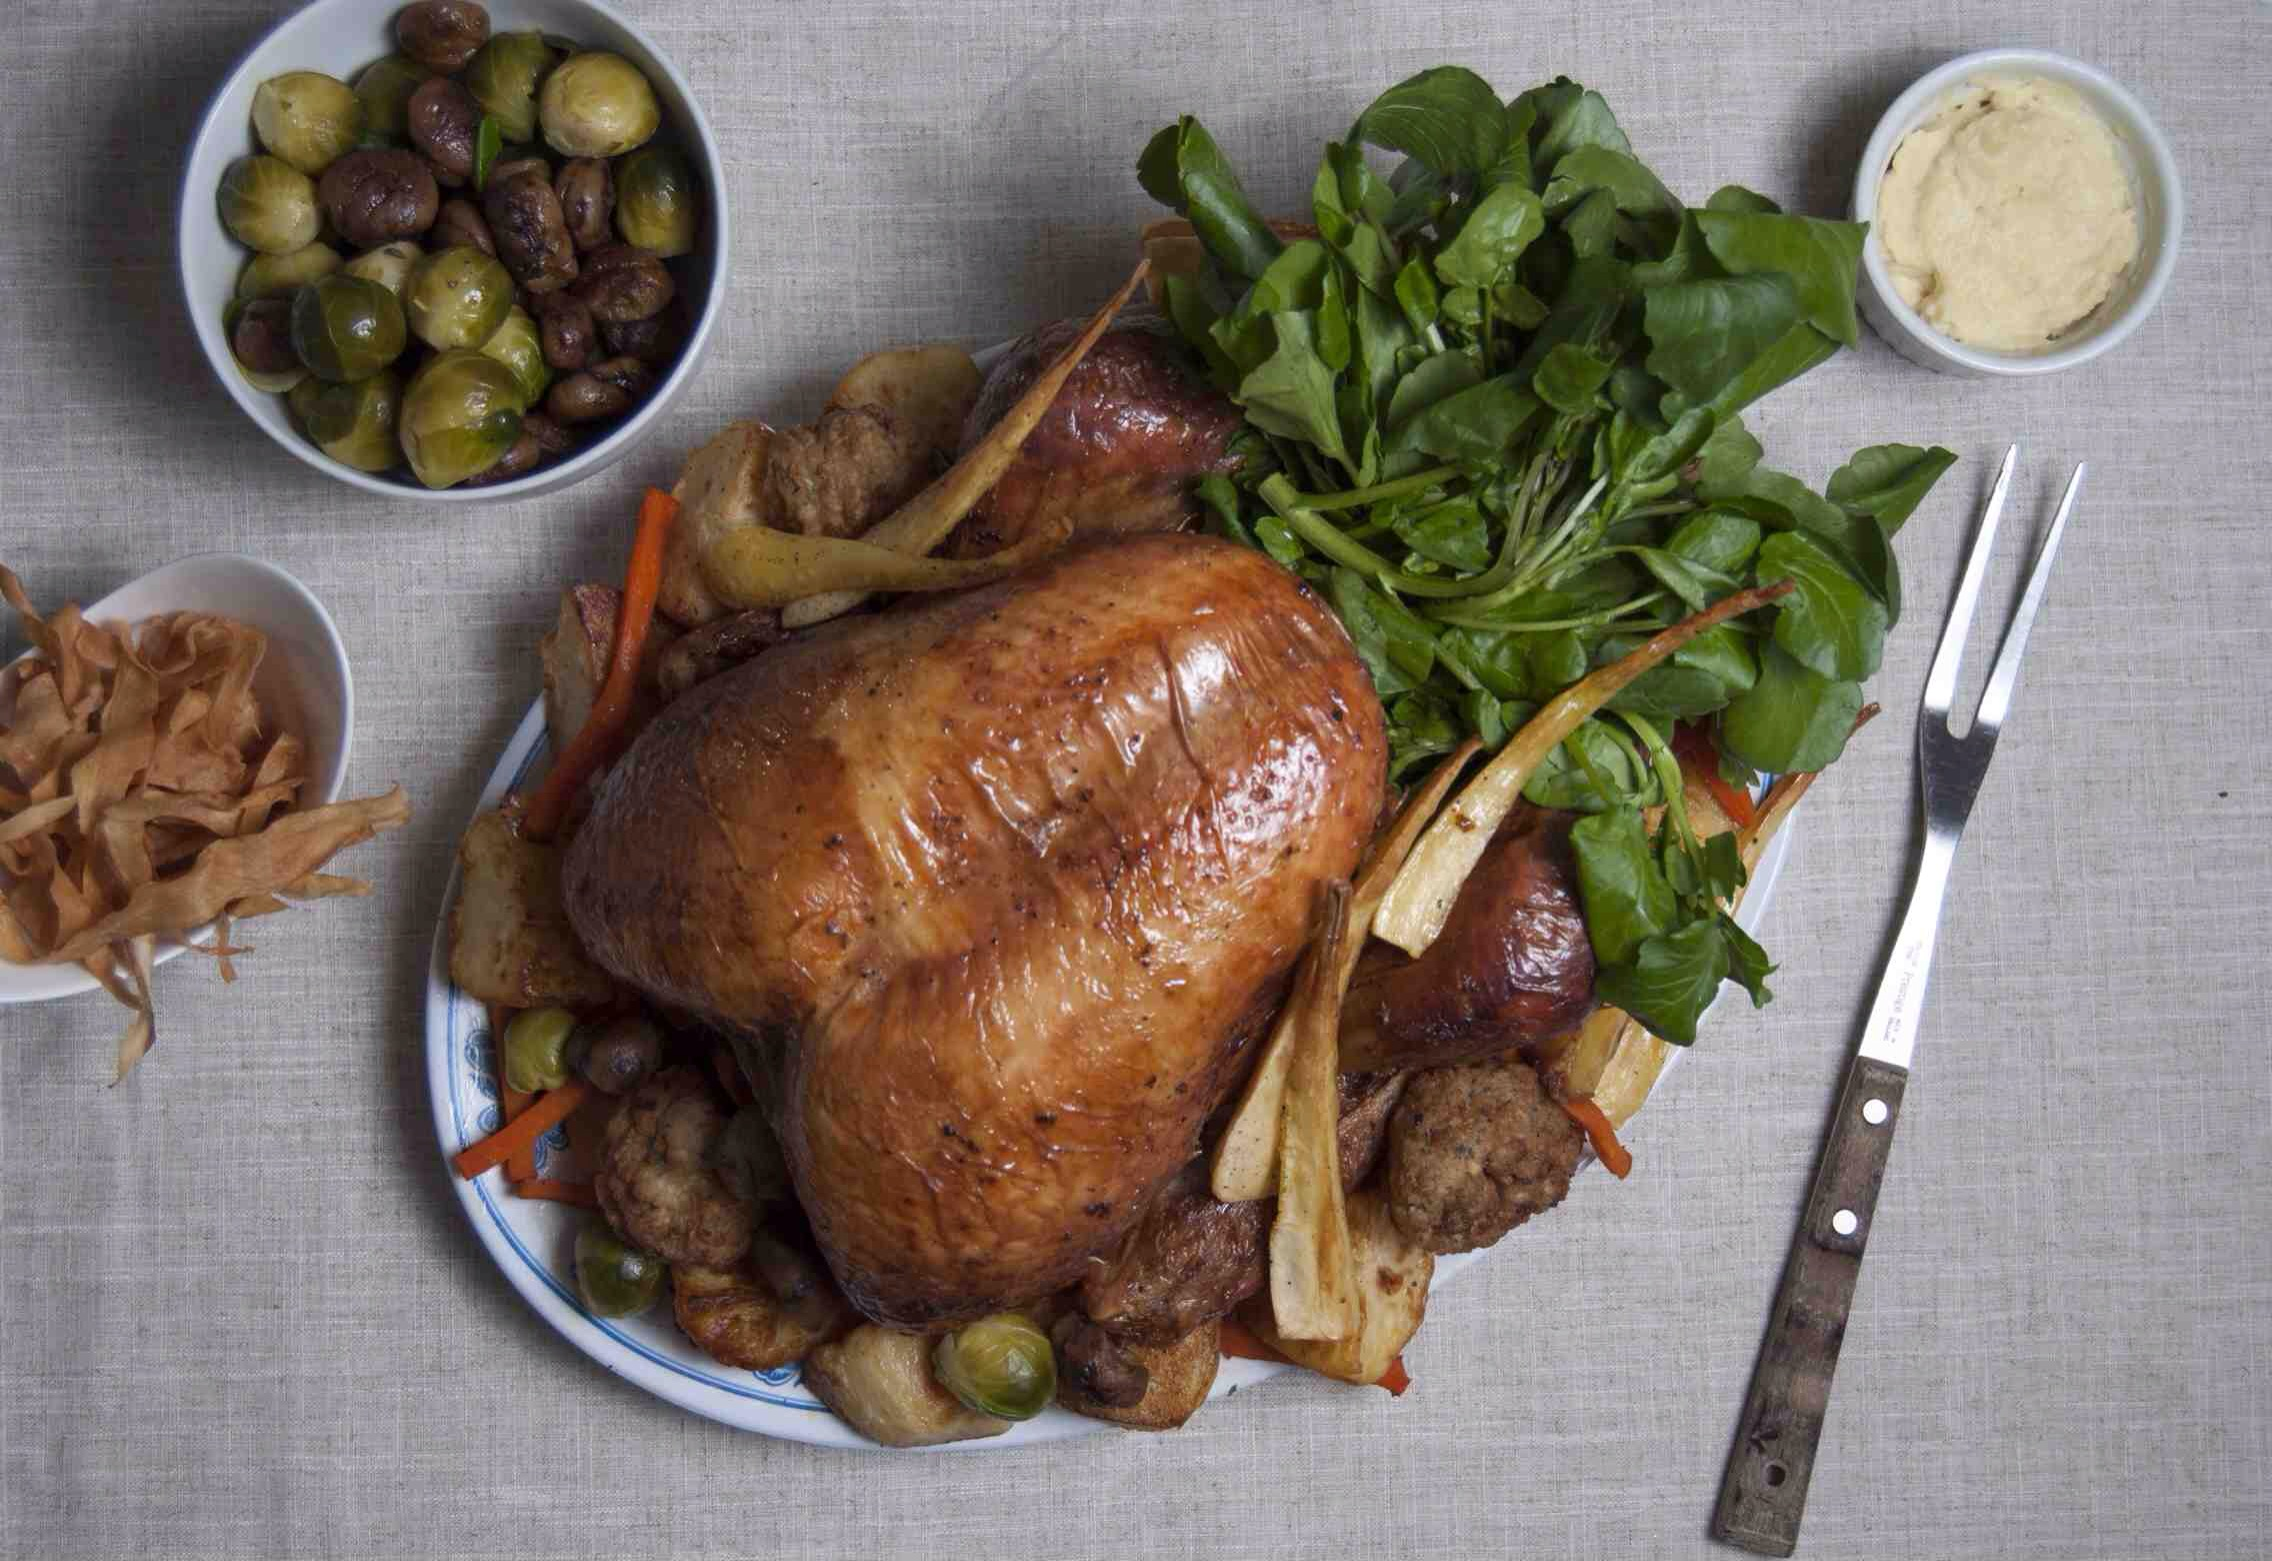 ⭐⭐⭐⭐⭐ - Our Organic Turkey got top marks in the Daily Mail's taste test